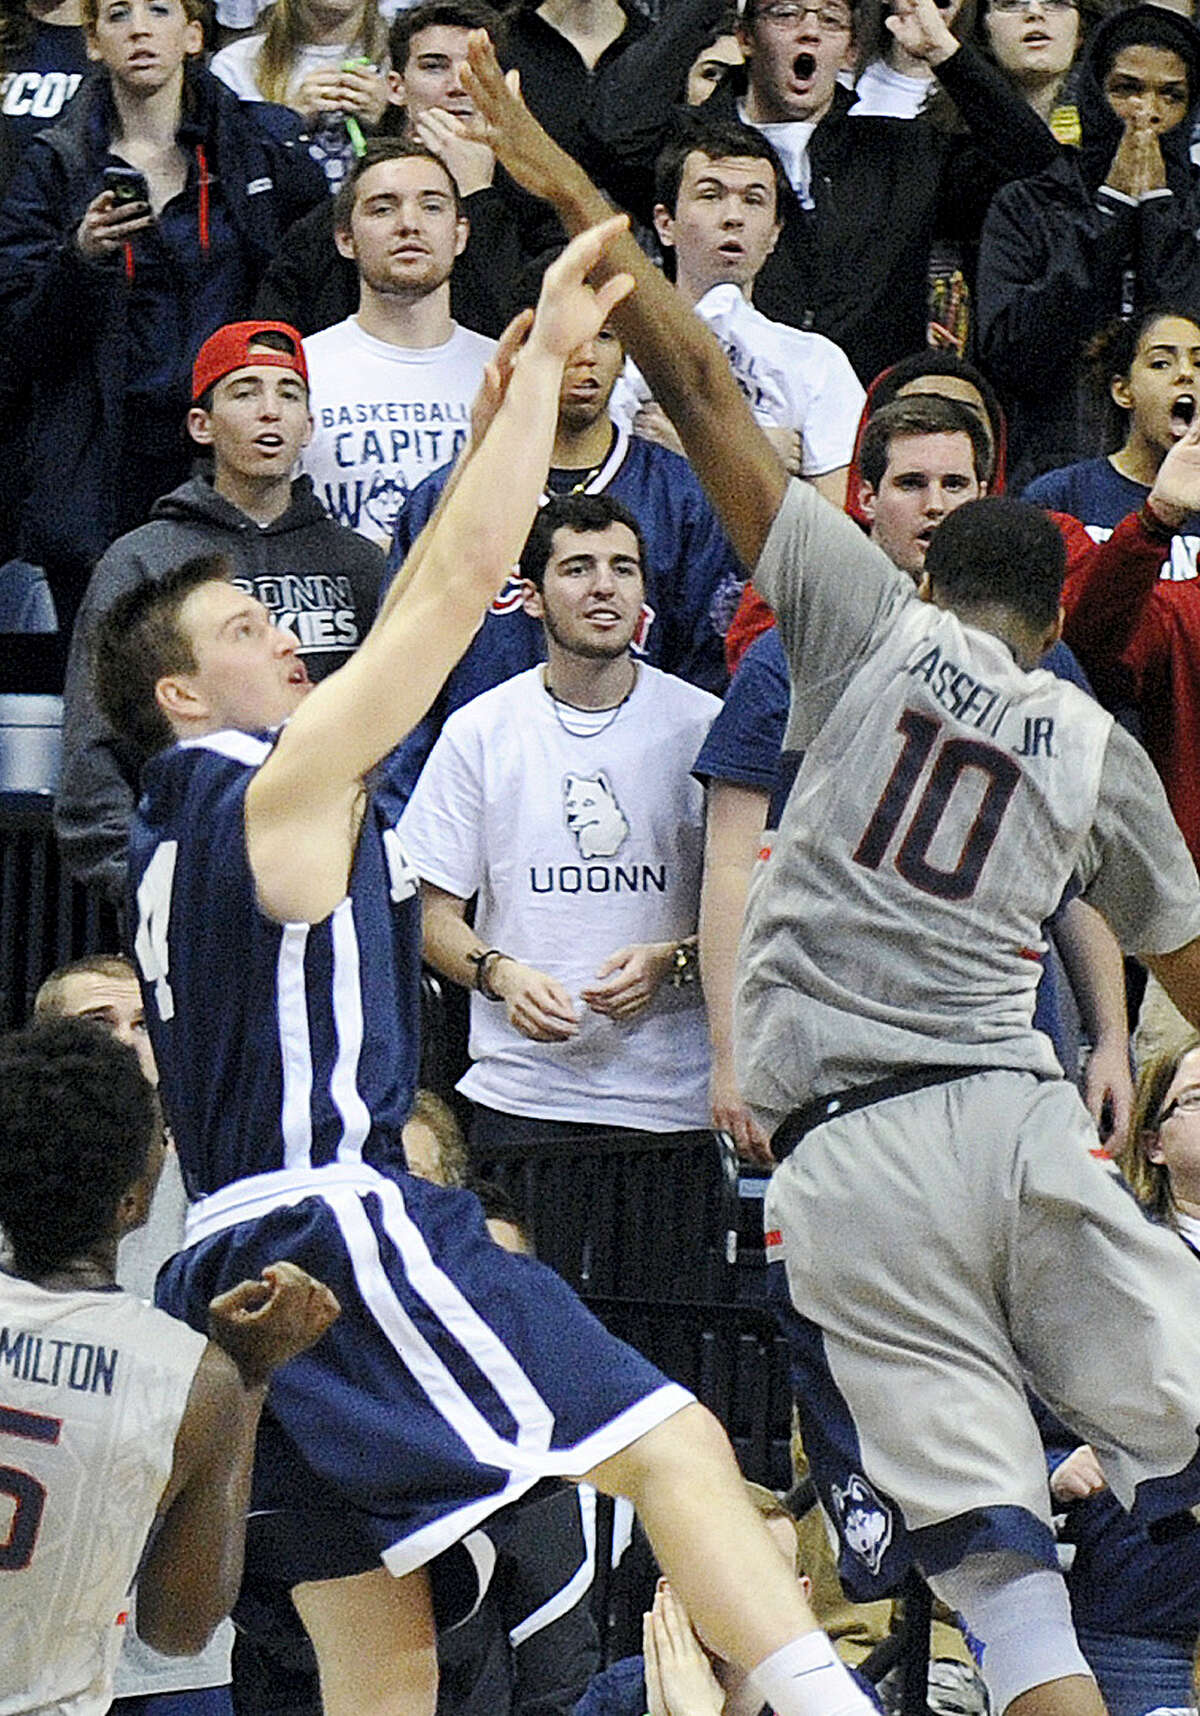 """Earlier this week, it was announced that Yale men's basketball captain Jack Montague, left, has withdrawn from school and will not return. On Friday, his teammates wore gray t-shirts with """"Yale"""" spelled backwards in inverted letters on the front and the nickname and number '4' of departed captain in pregame warmups. The players say it was not a statement, but rather just a show of support for their former teammate."""